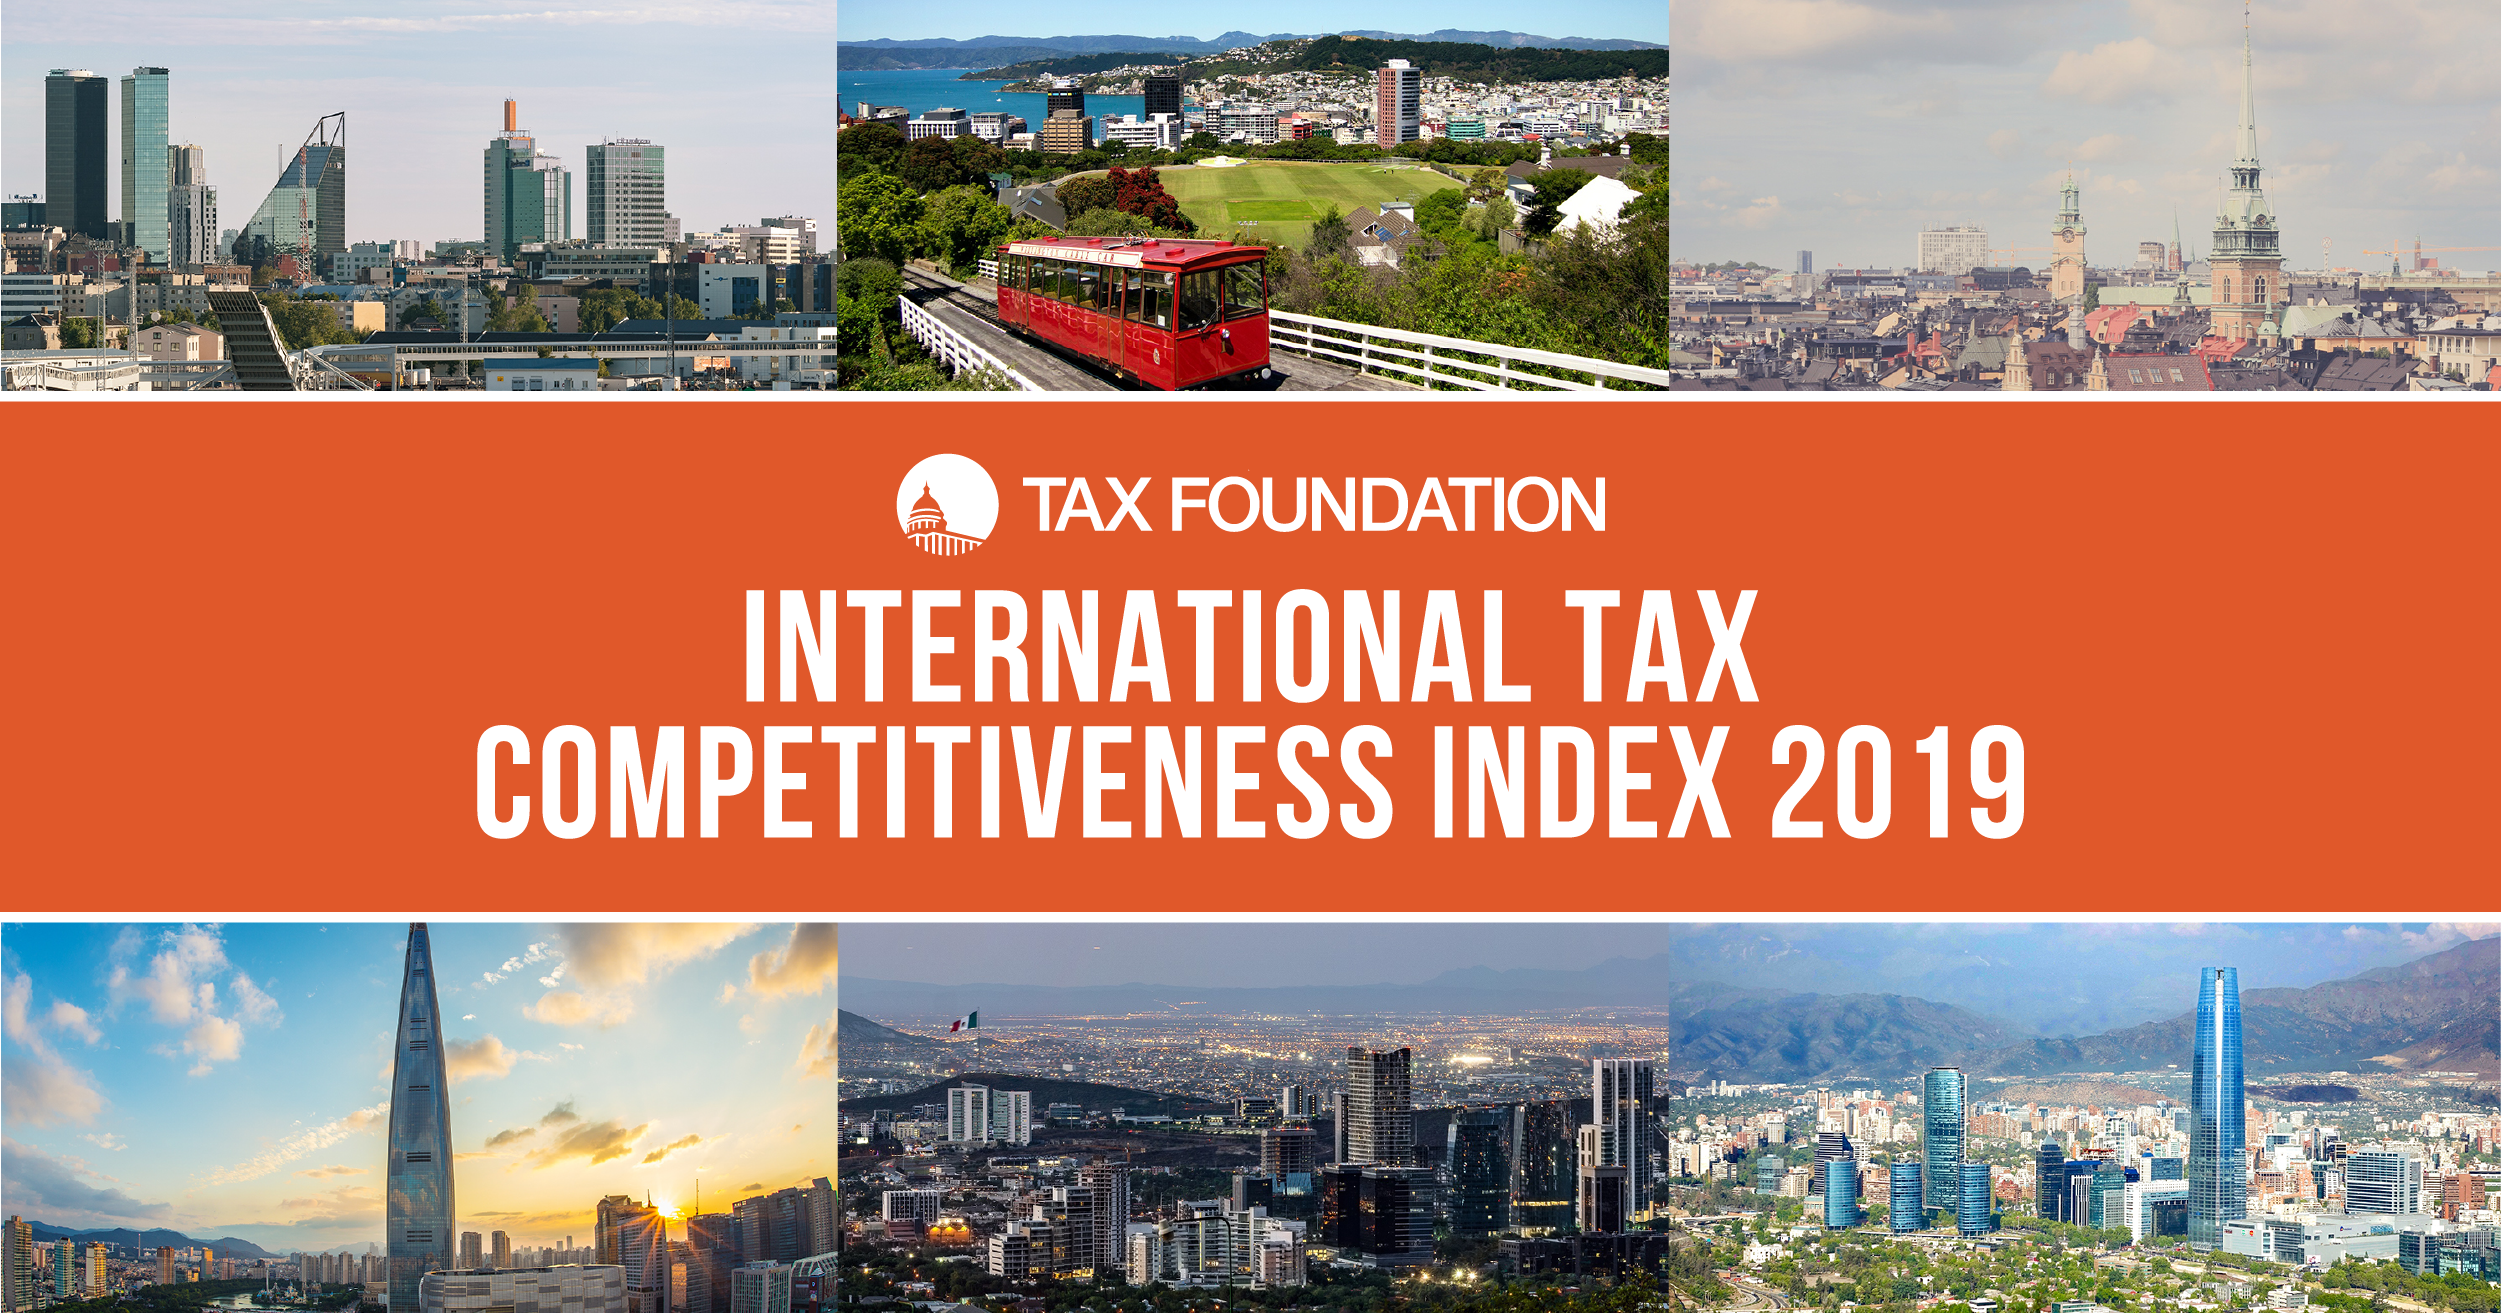 Greece ranks 30th over 36 OECD countries on the 2019 International Tax Competitiveness Index